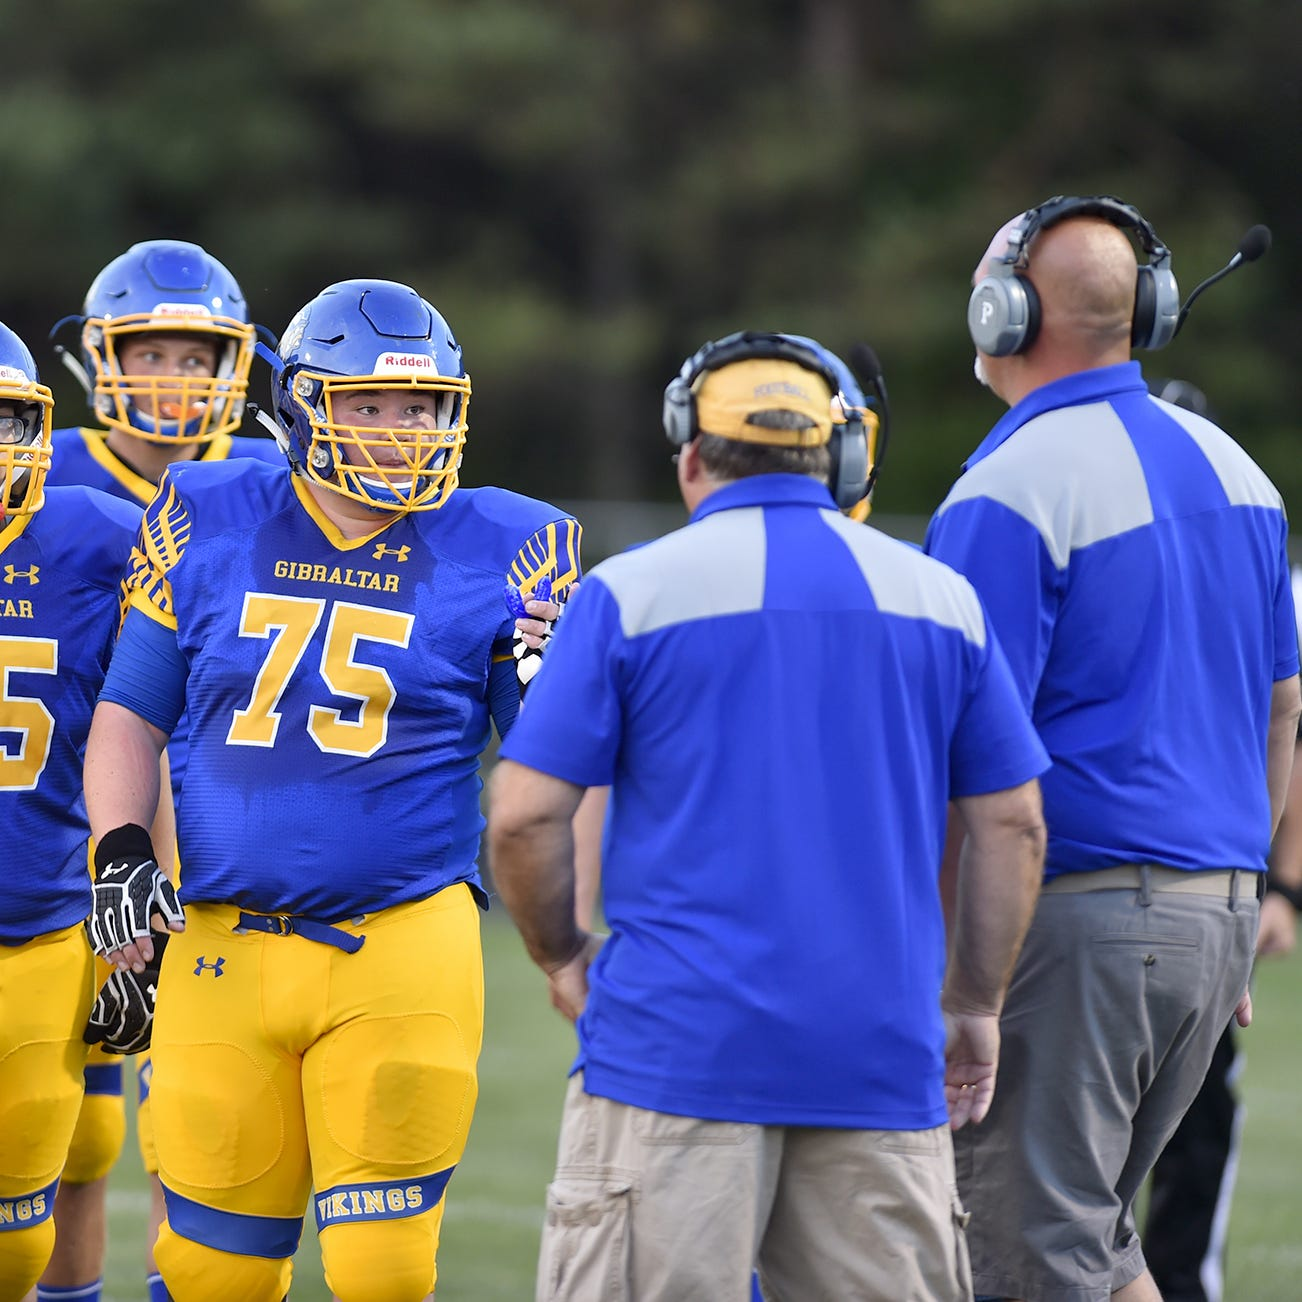 Gibraltar now eligible for postseason football after enrollment numbers updated